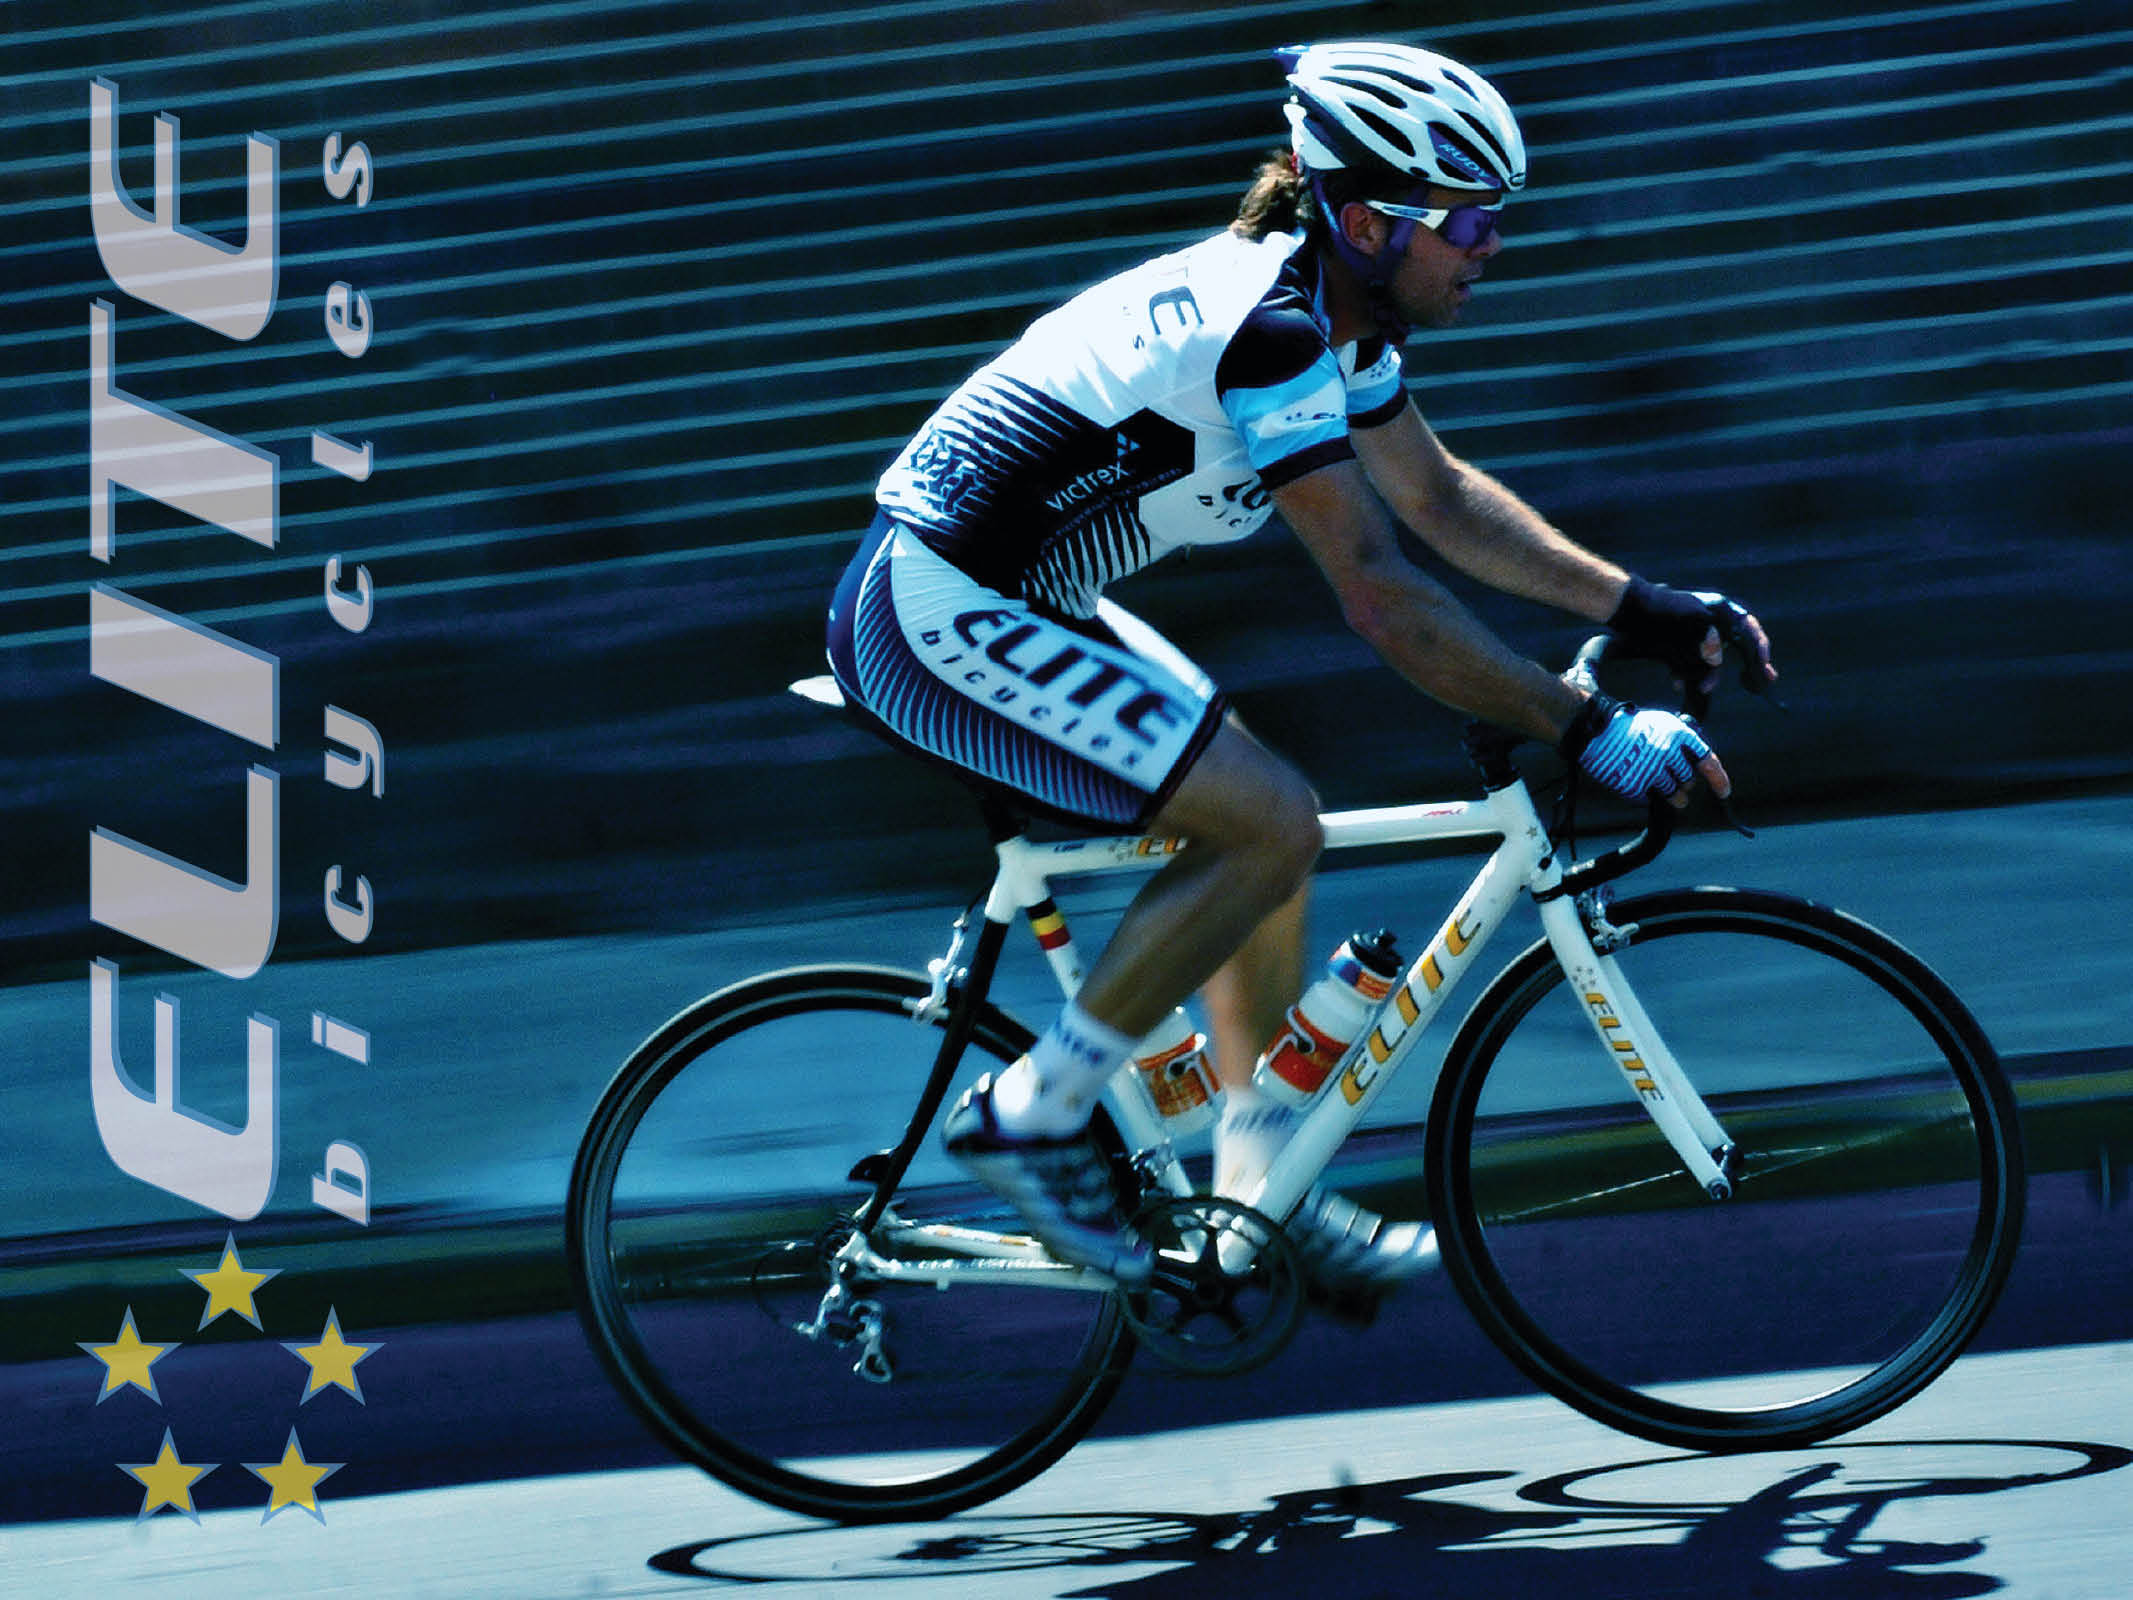 fun new wallpaper for the world to enjoy | elite bicycles news